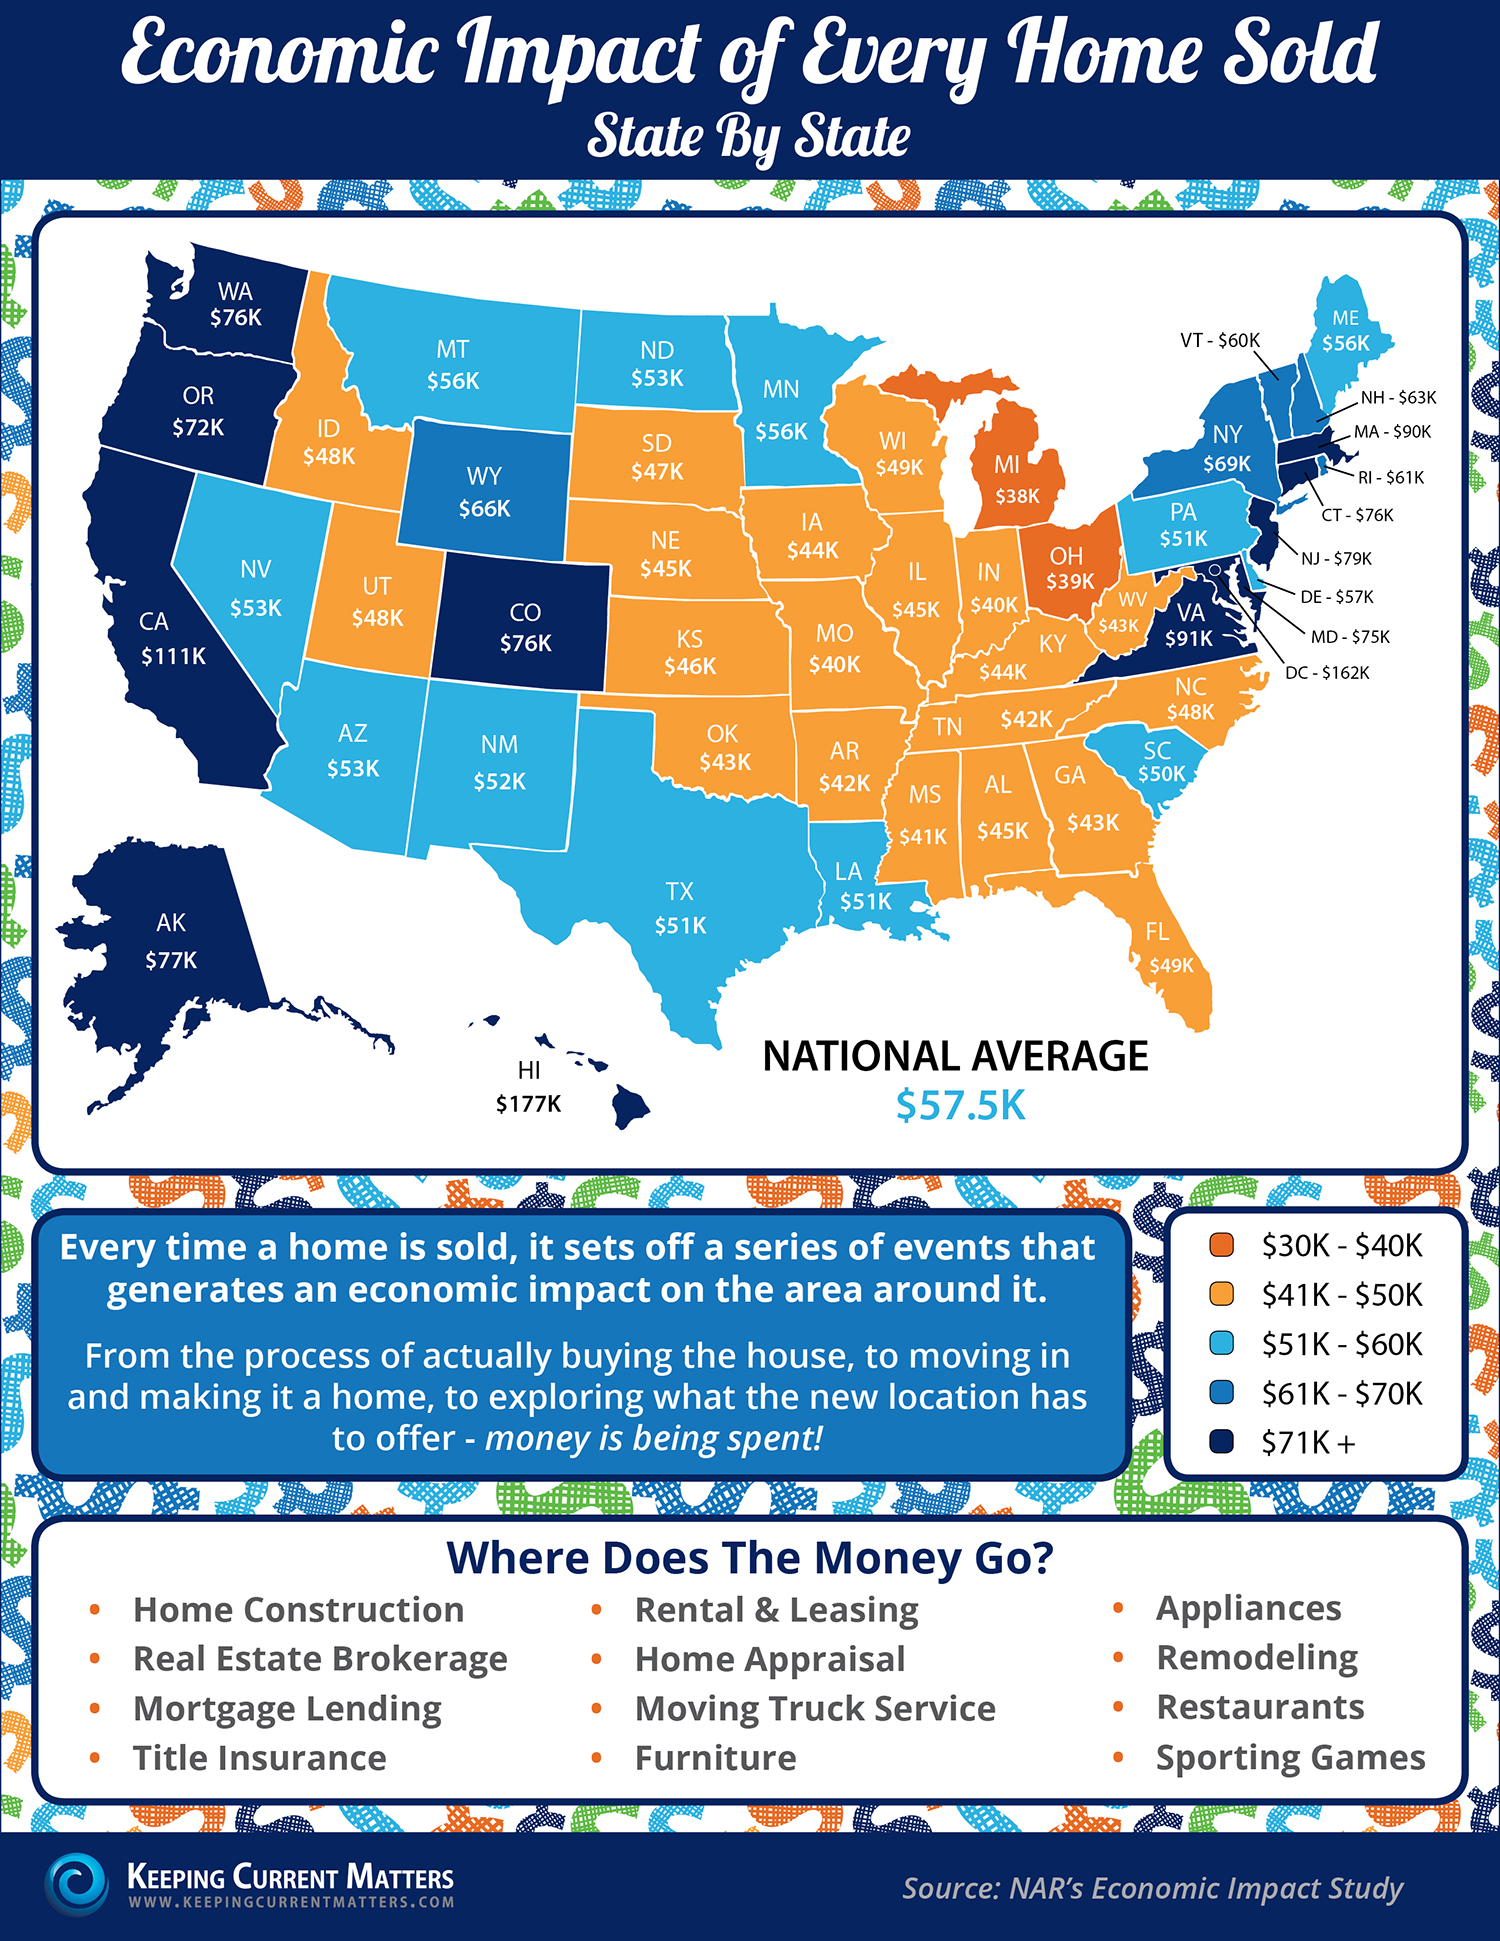 Economic Impact of Every Home Sold [INFOGRAPHIC] | Keeping Current Matters